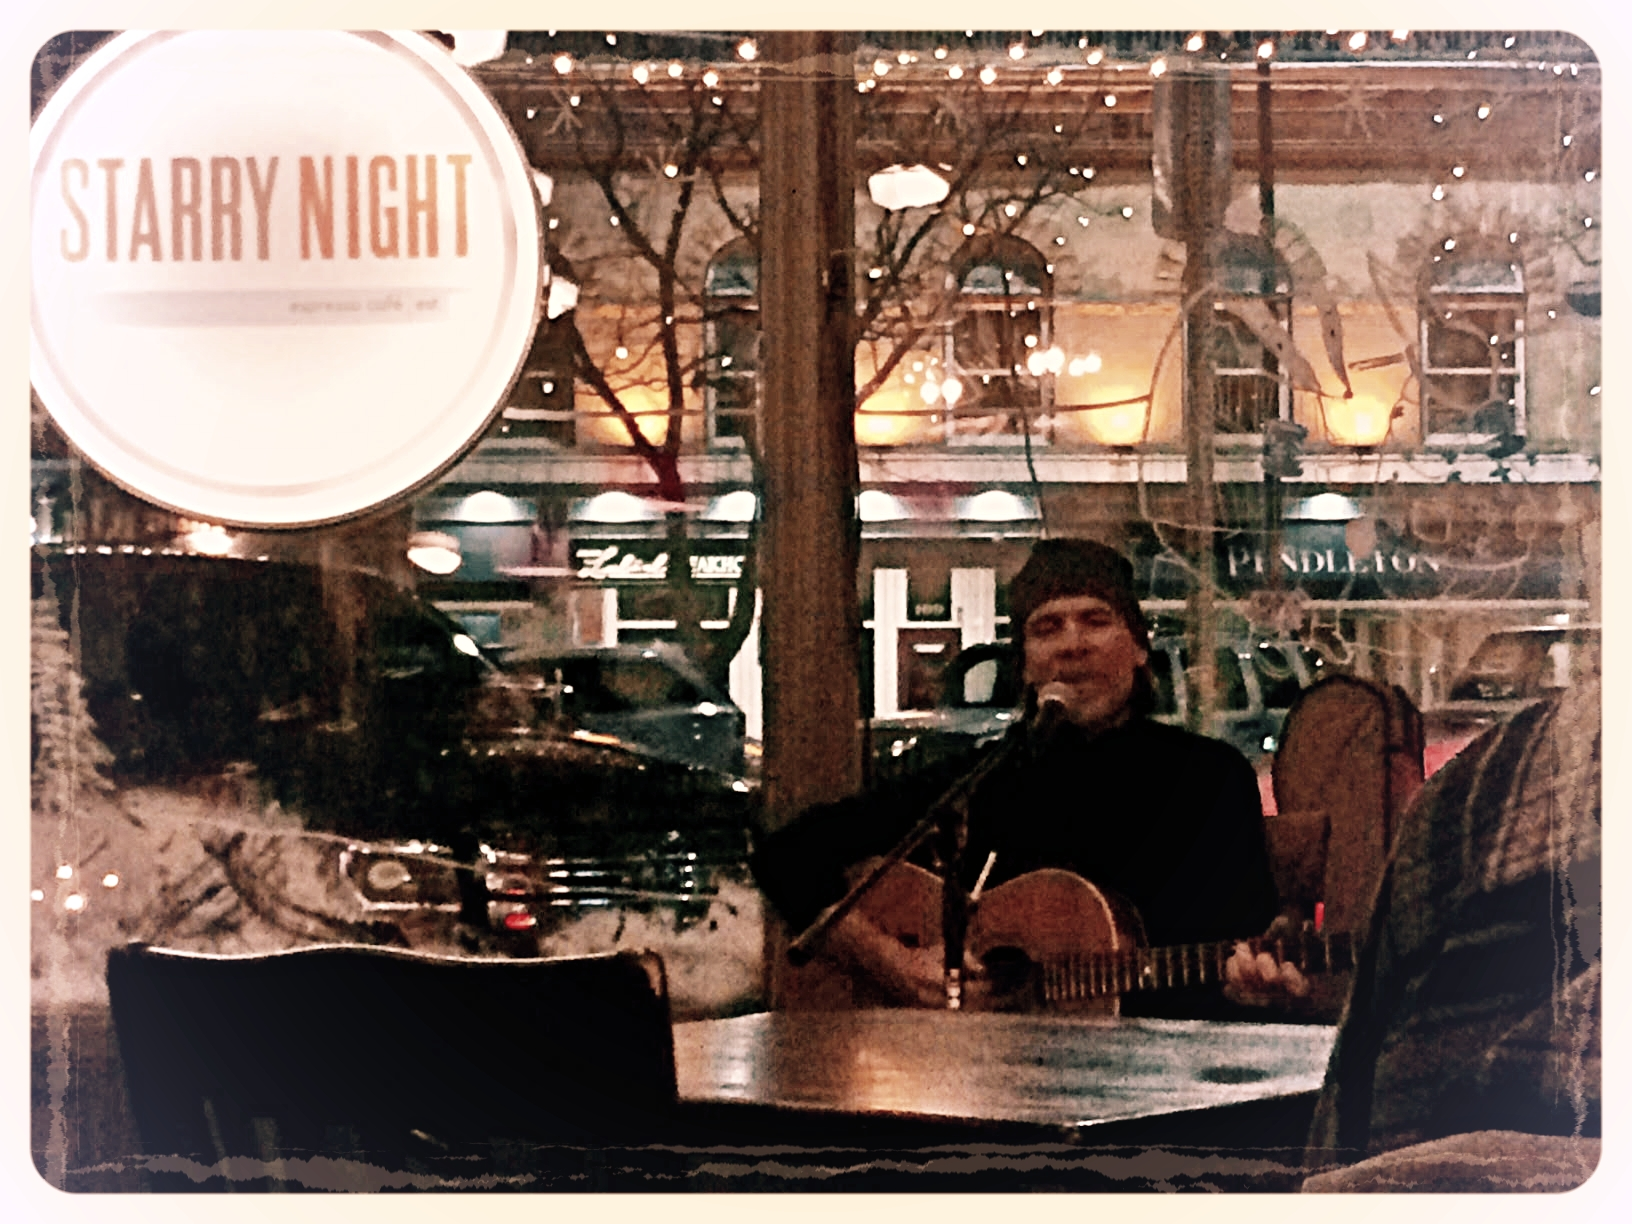 Come listen. I will be playing again on Friday, April 6th 7-8pm.